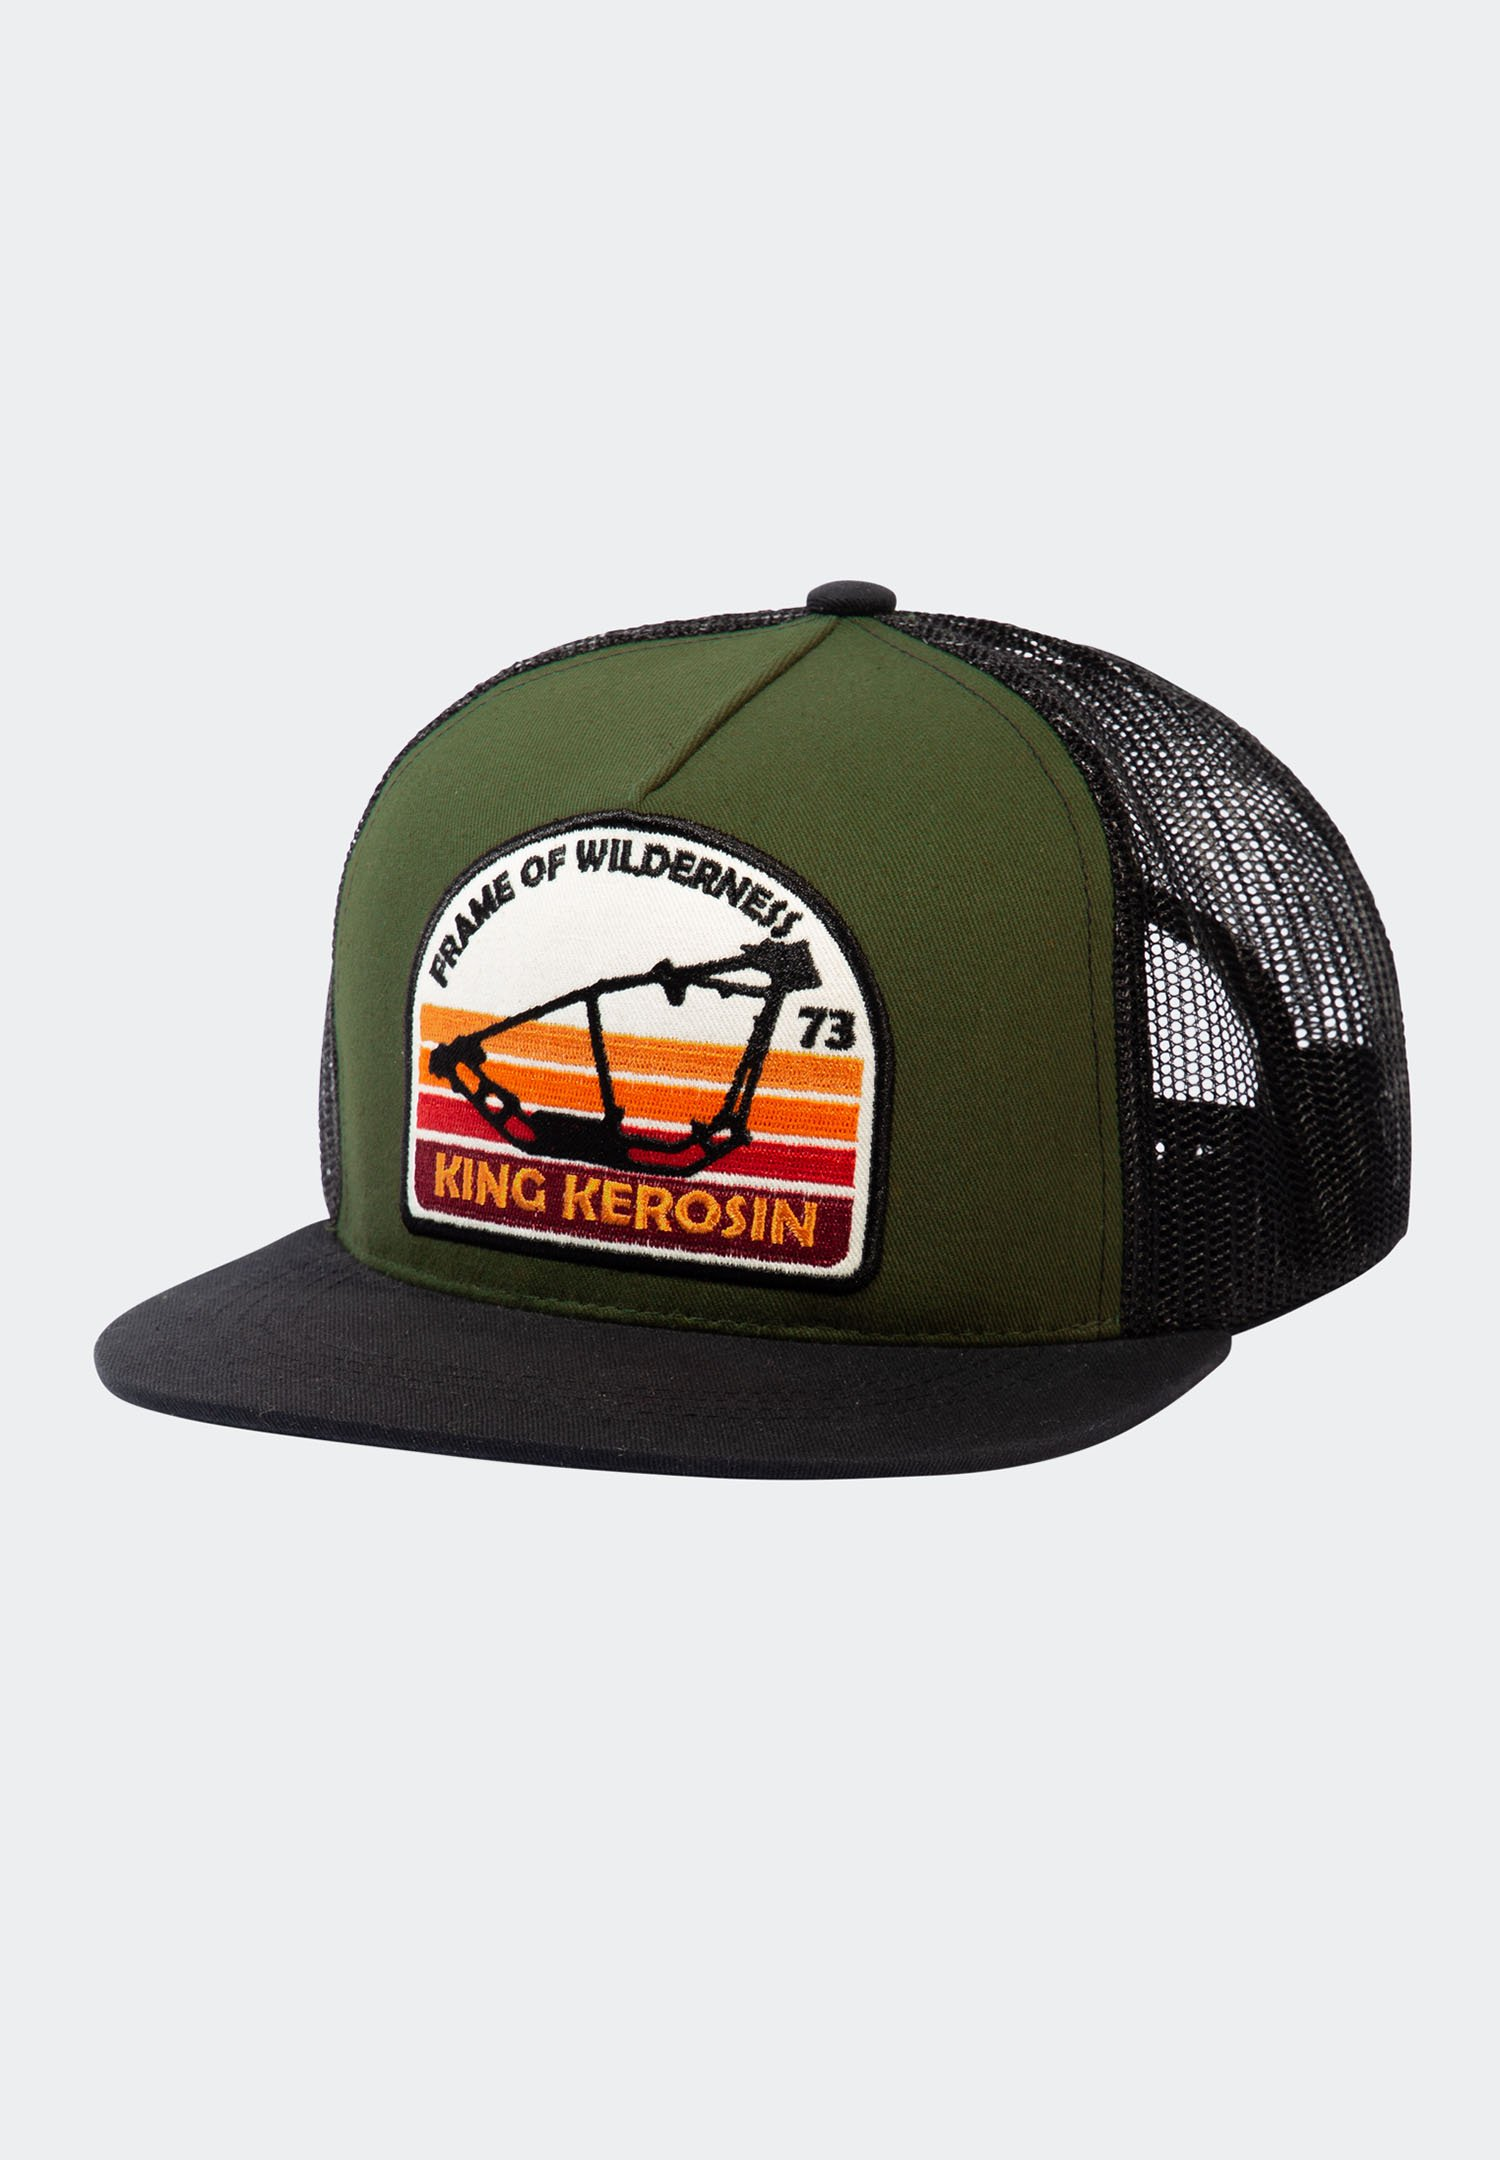 Homme FRAME OF WILDERNESS - Casquette